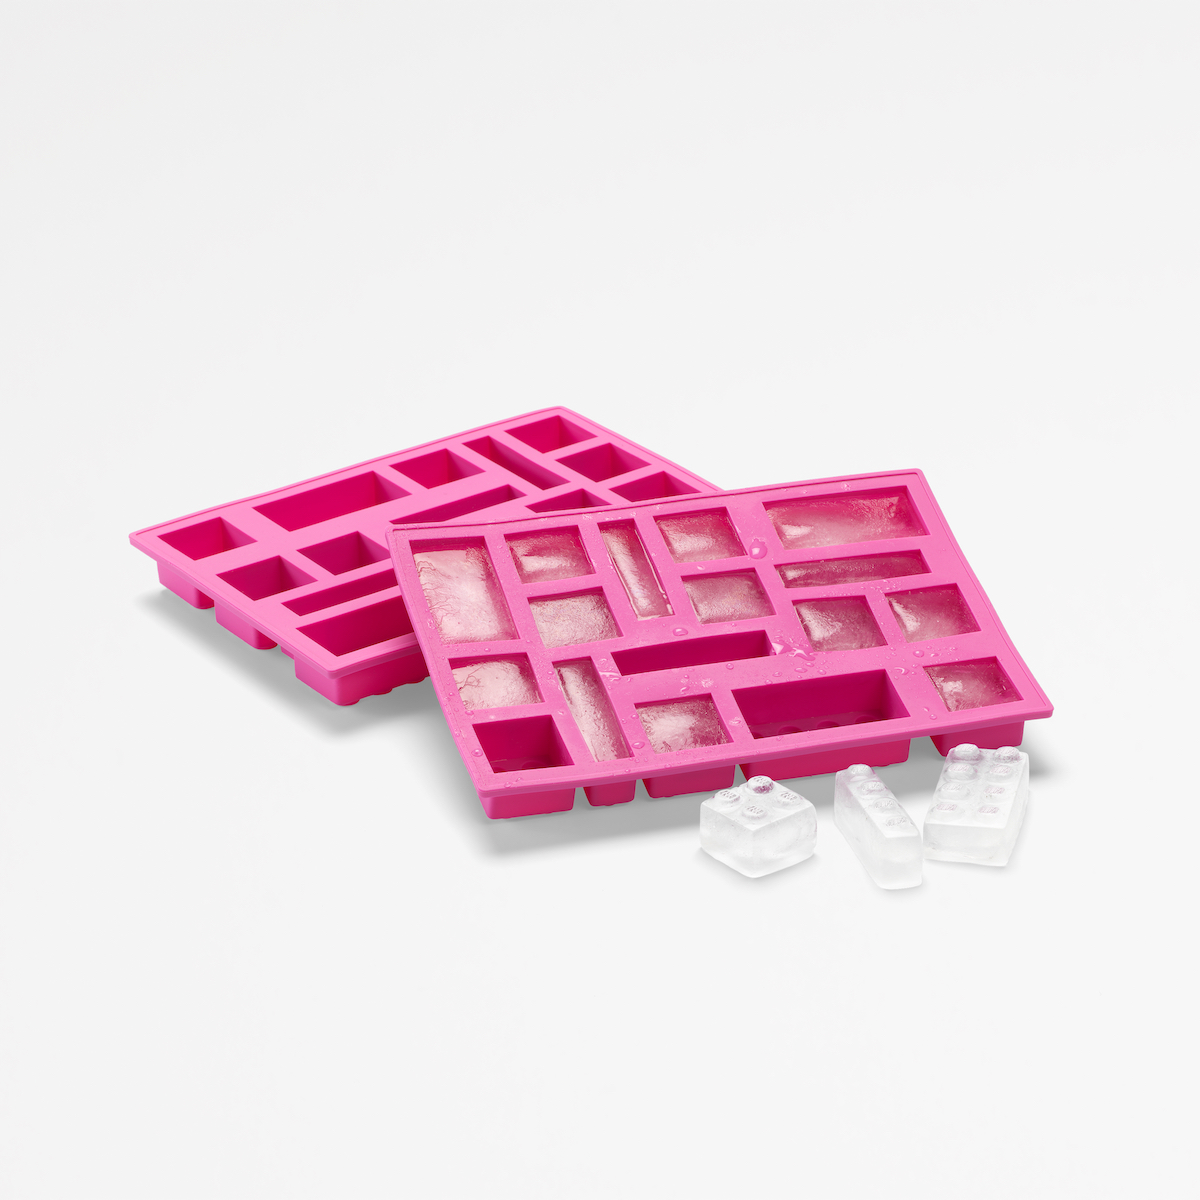 Ice tray full of LEGO® bricks